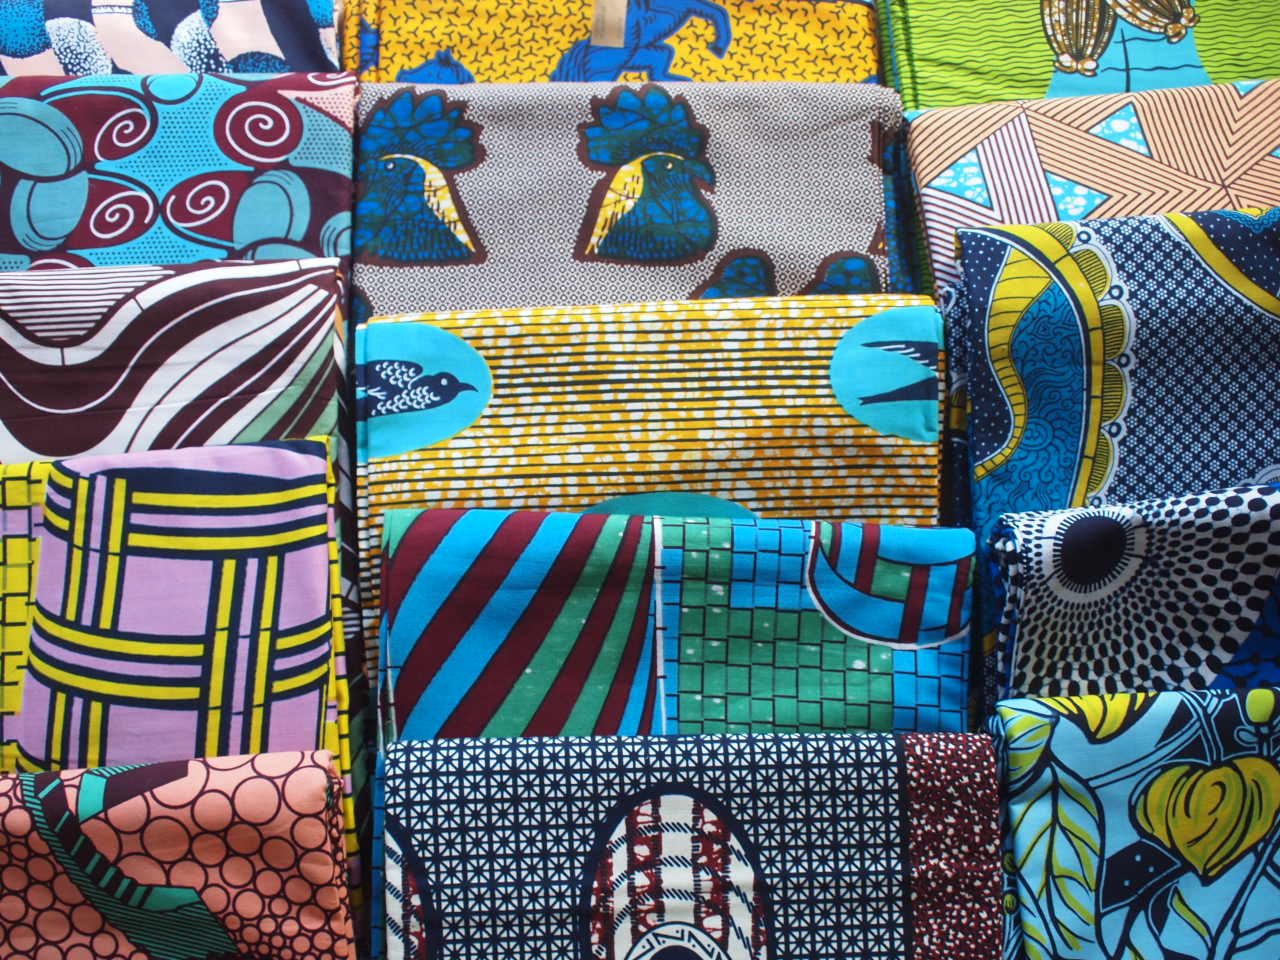 4/30 thu-5/10 sun『African textile 煌めく色との出会い2020-ボトムオーダー会at Keito online shop』